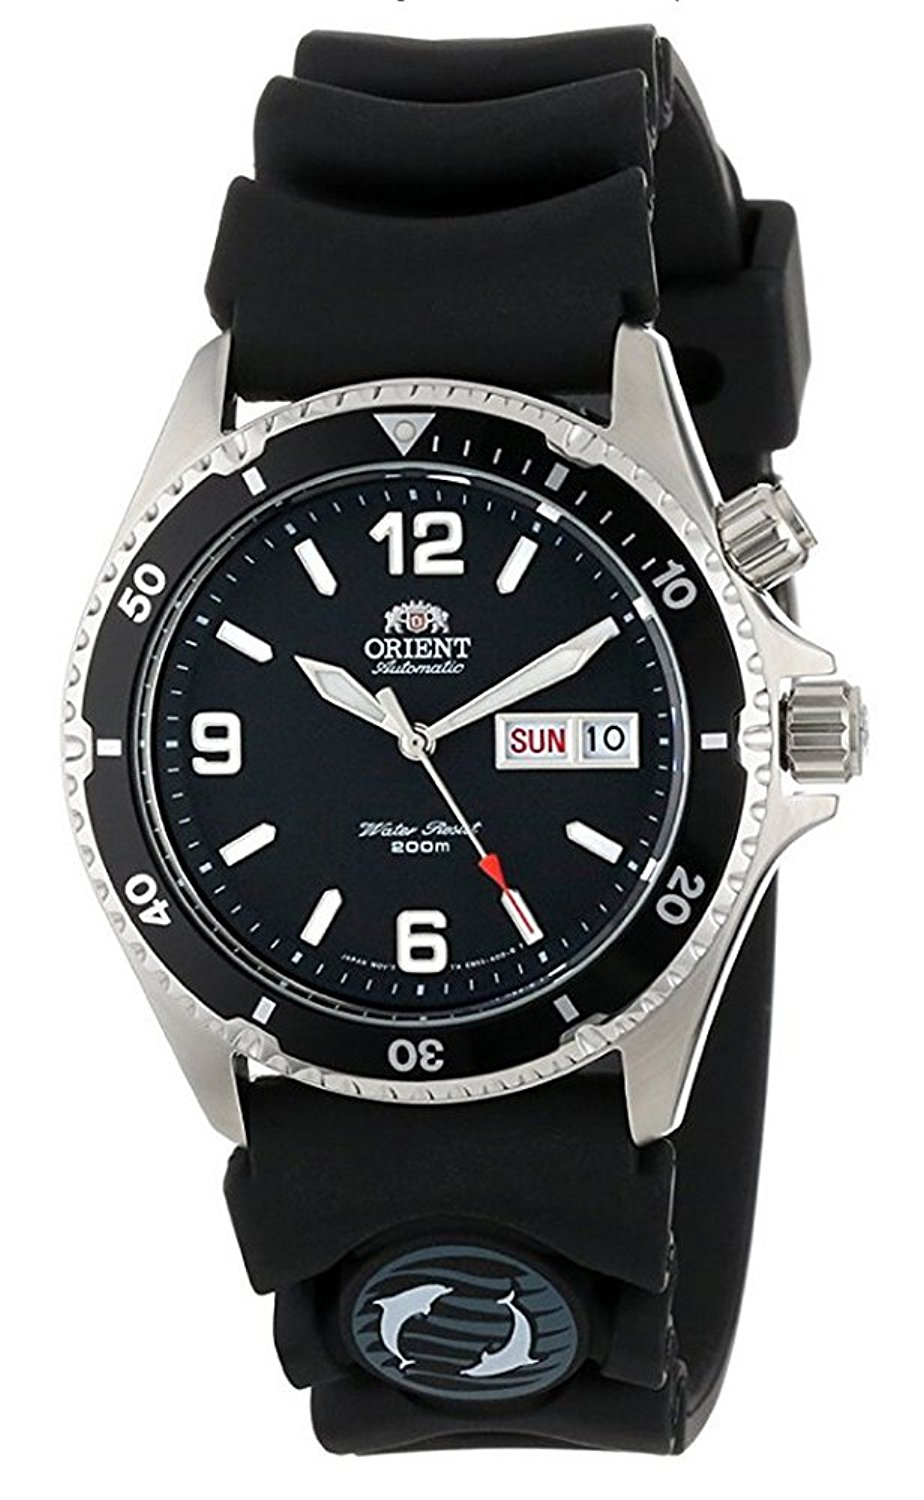 fb0ae7e0743 Get Quotations · Orient Mako Black Dial Automatic Dive Watch with Rubber  Dive Strap EM65004B